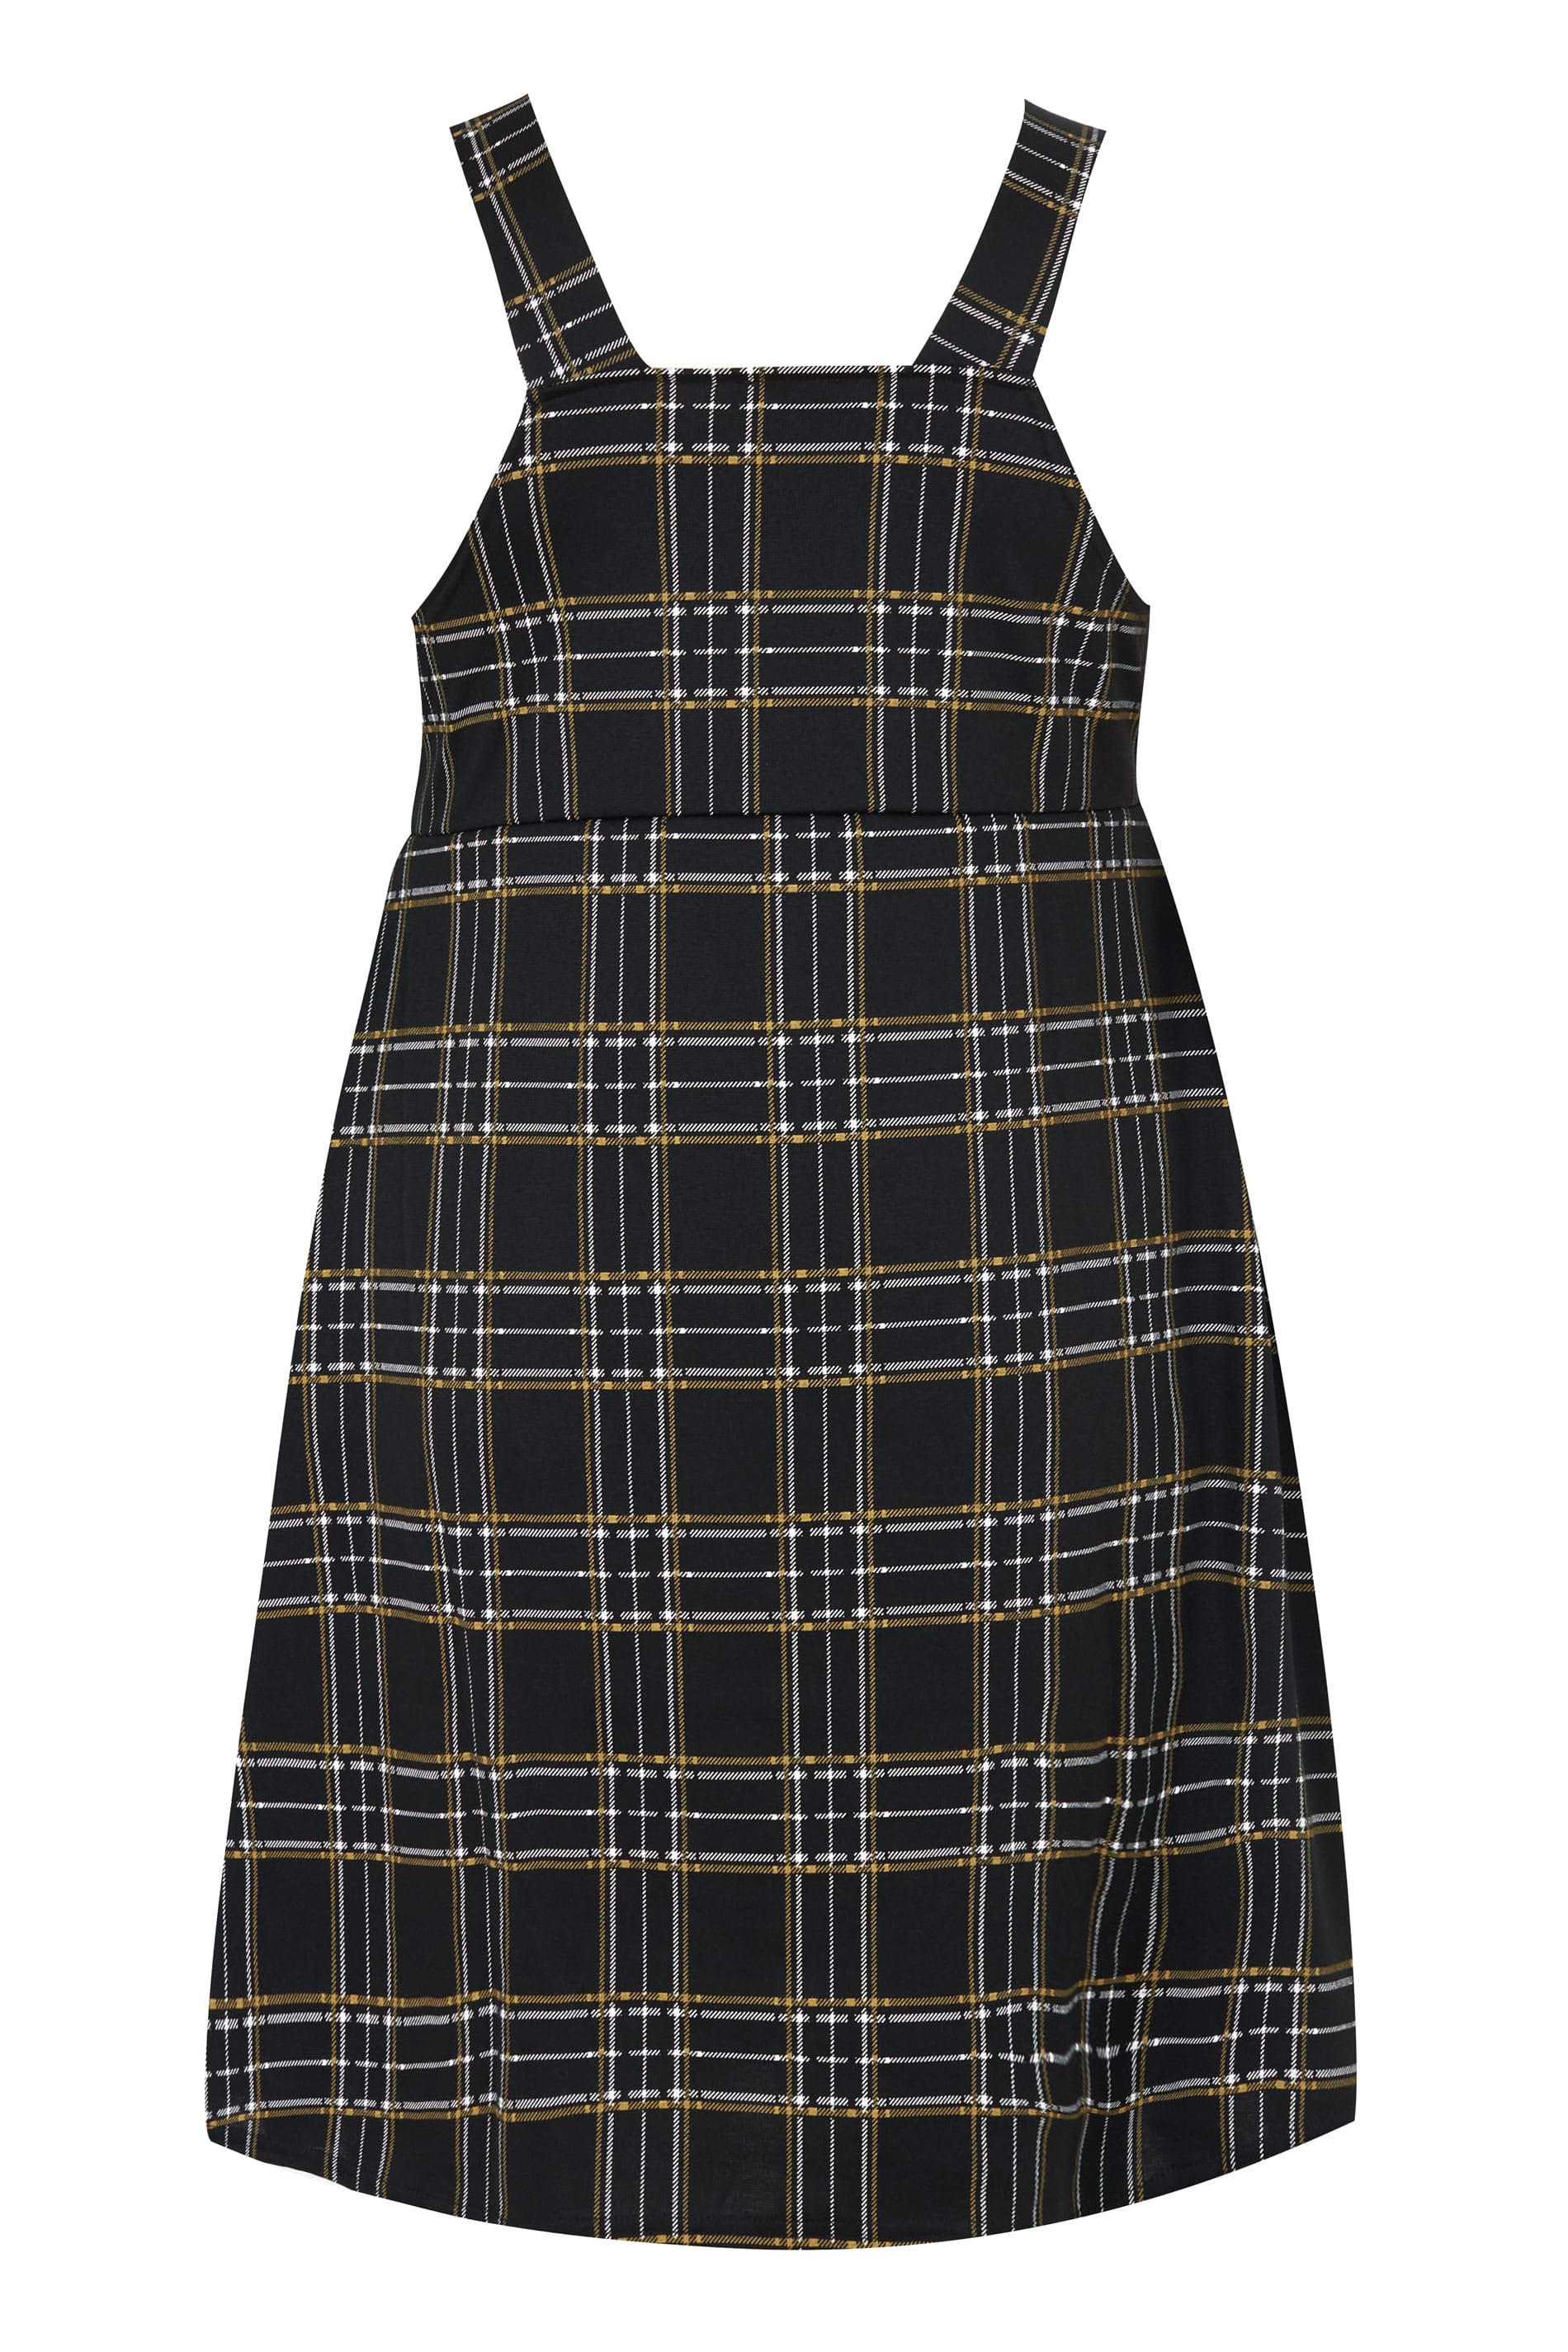 Collezione limitata Plus Size Black Yellow Check Pinafore-4422